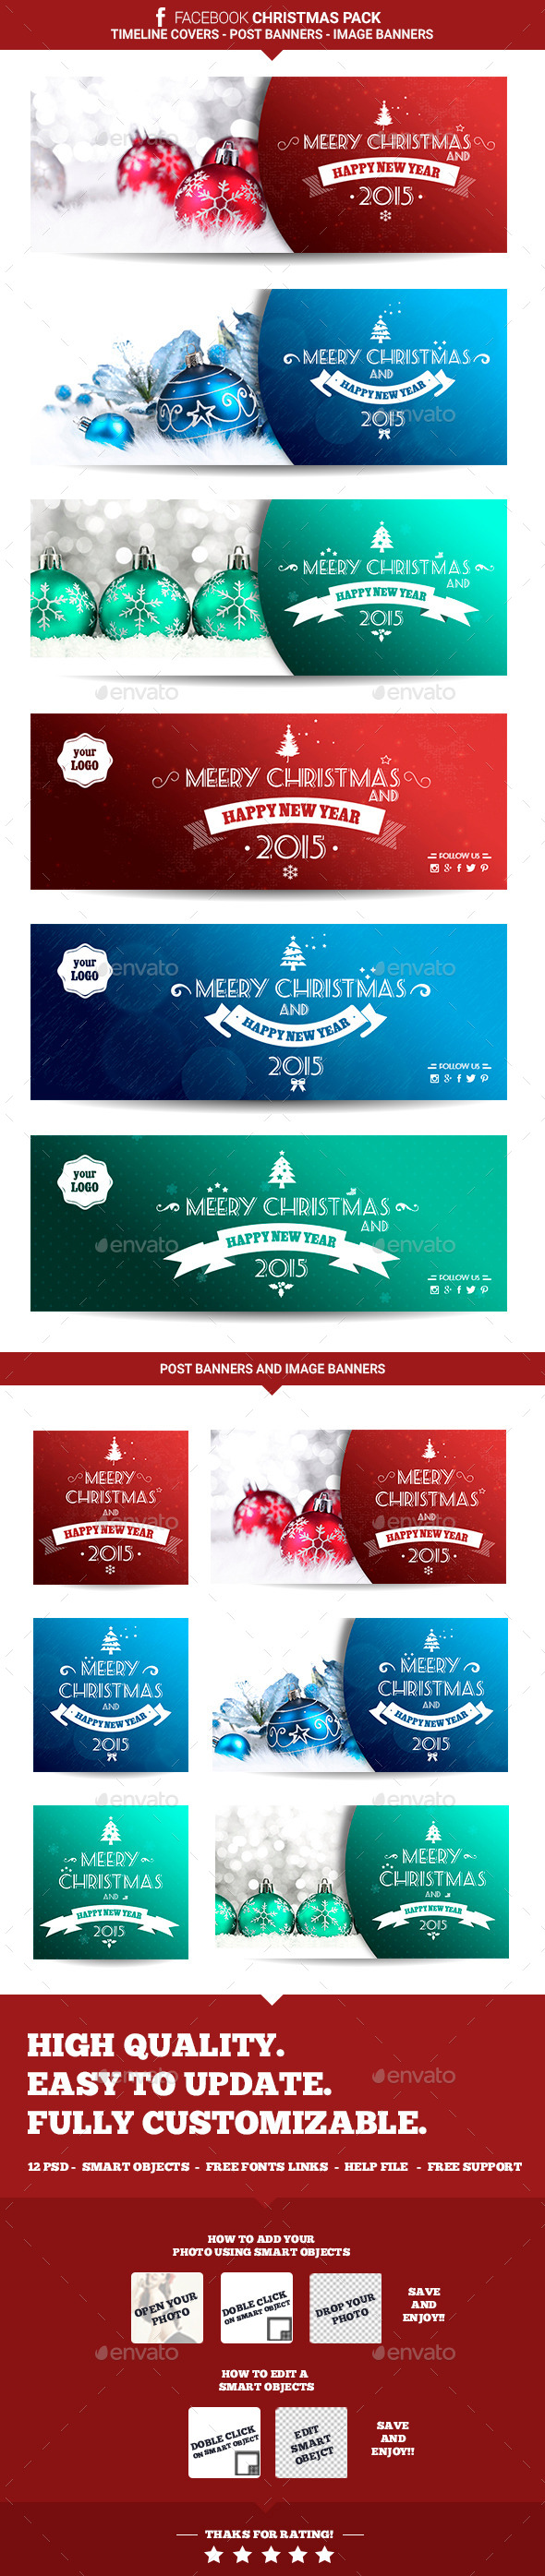 GraphicRiver Facebook Christmas Pack 9638037